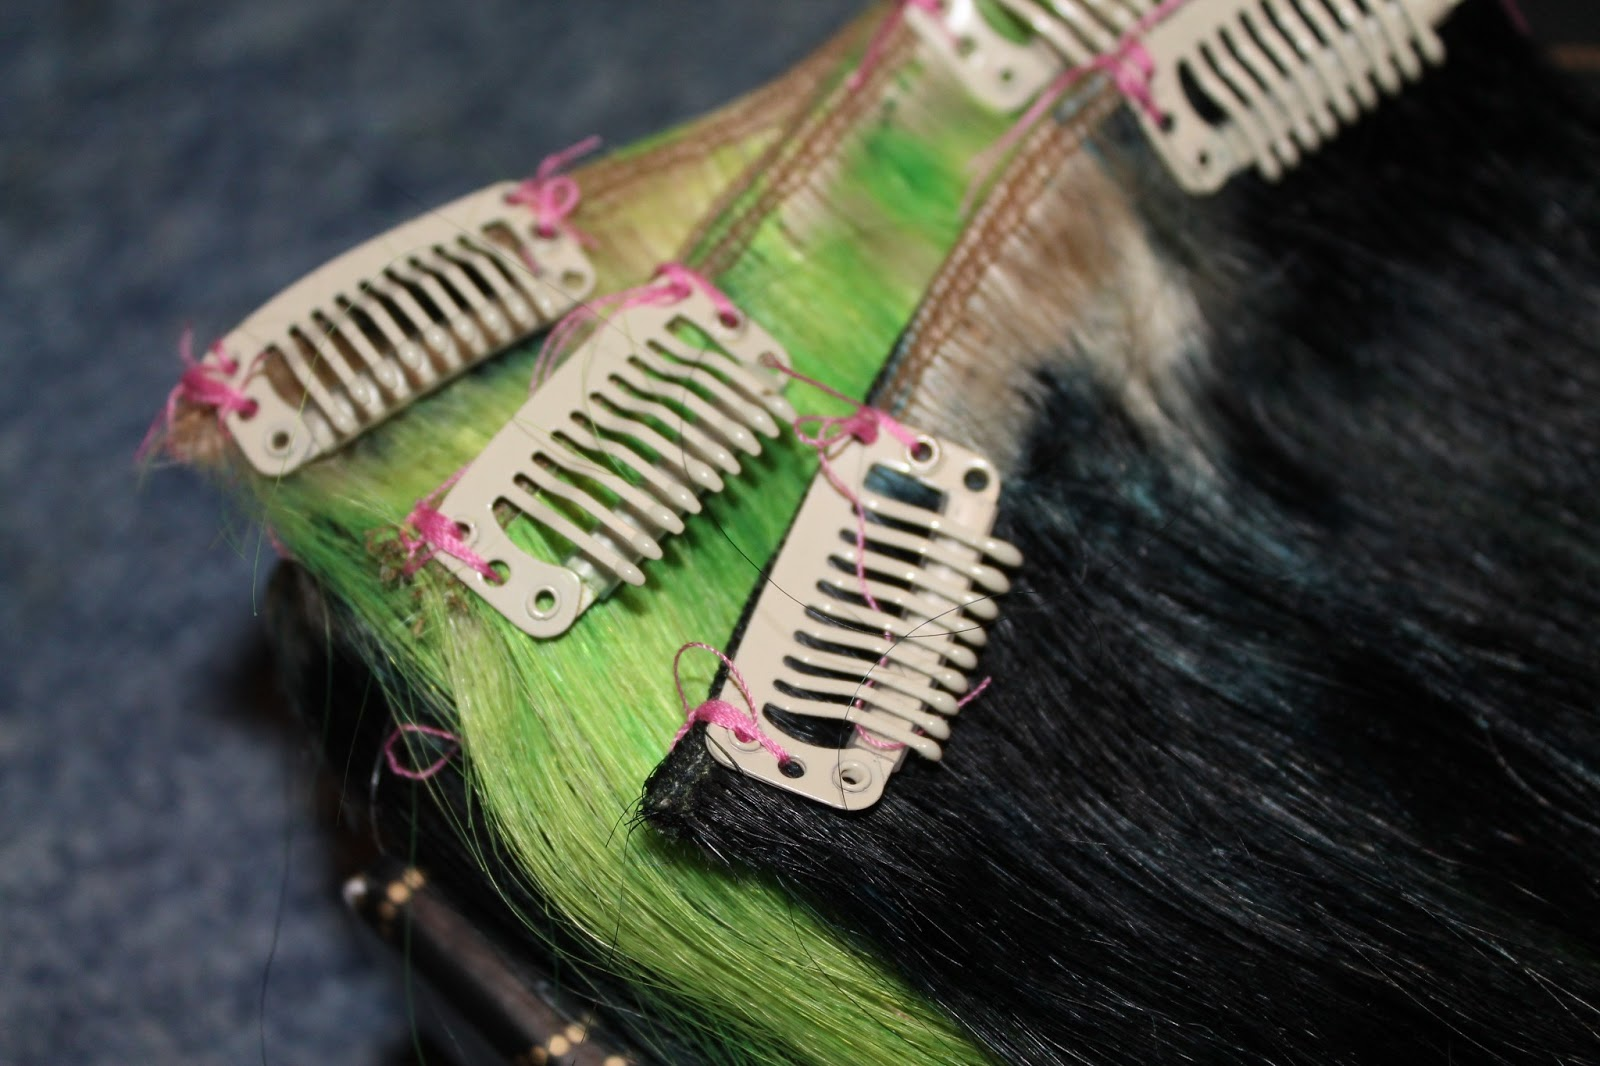 Xtras Human Hair Extensions Reveiw To Fall Or Fly